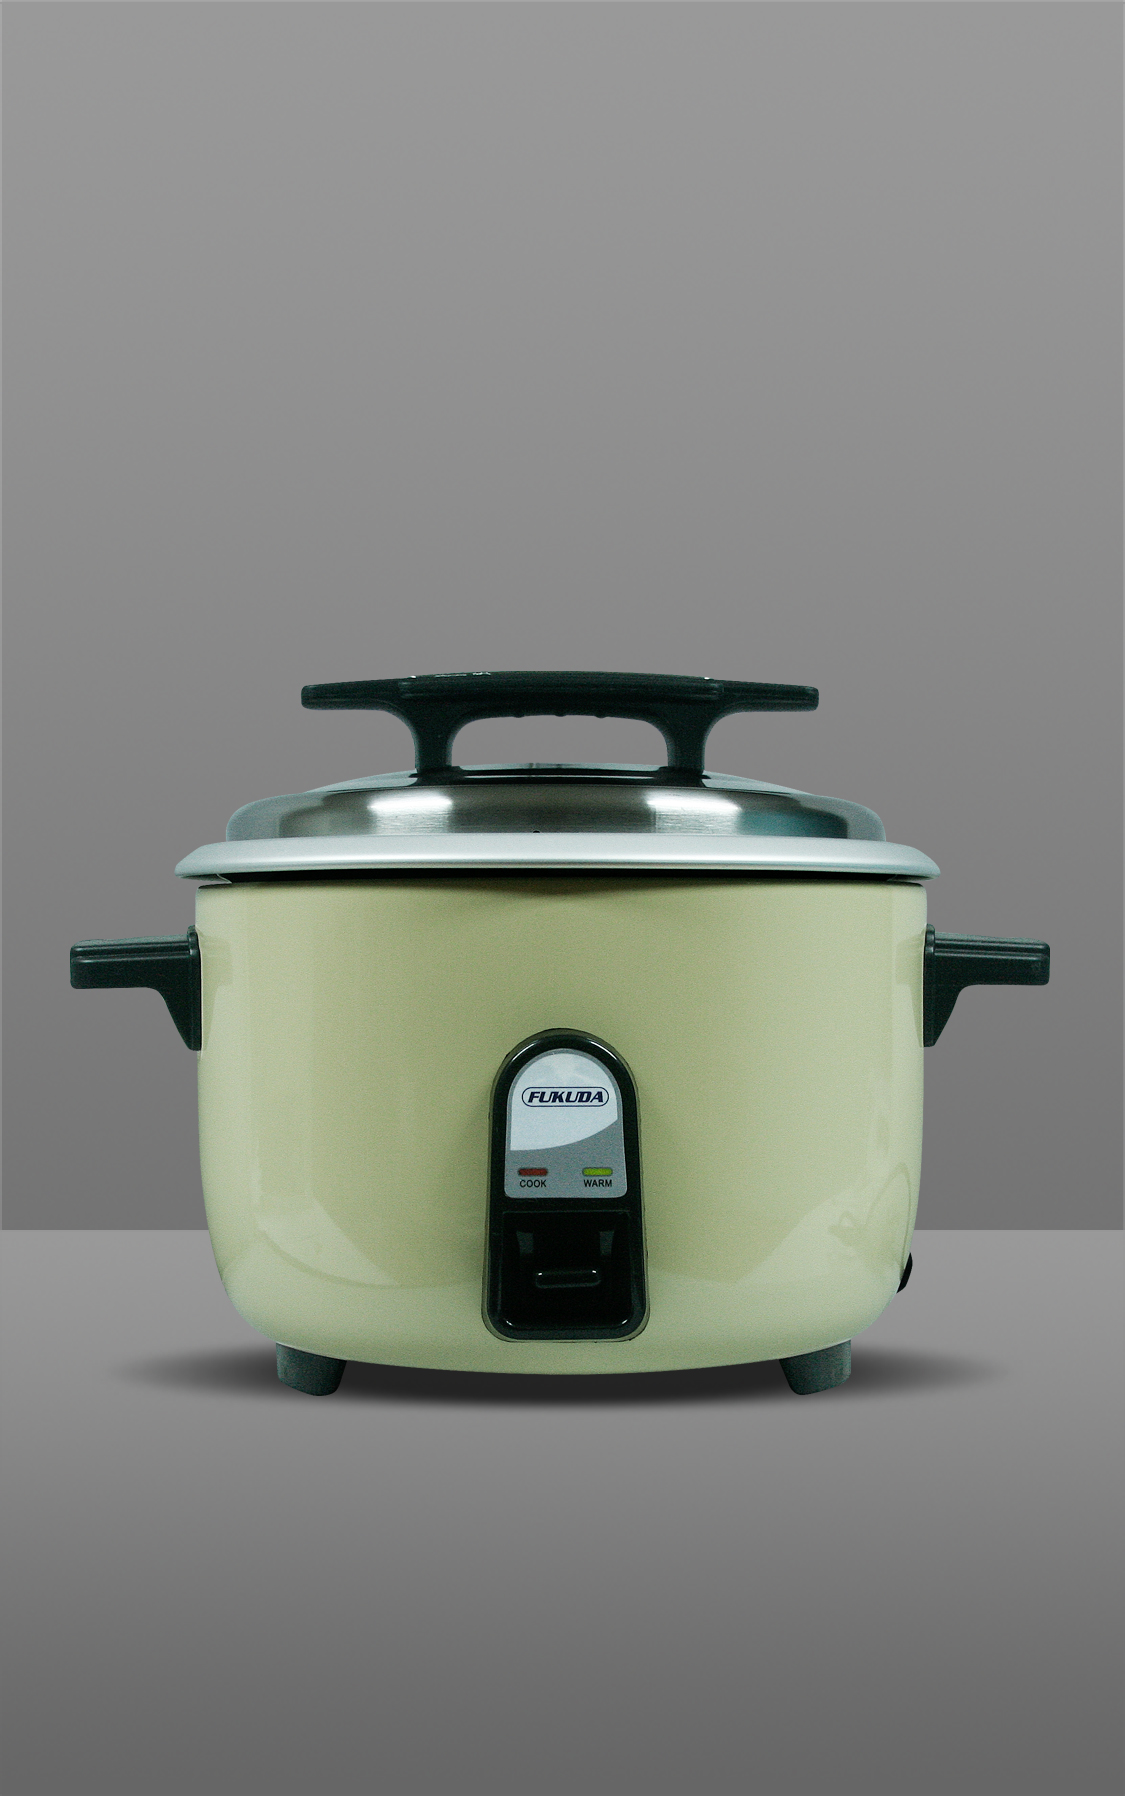 35 CUPS COMMERCIAL RICE COOKER & WARMER 5.6L